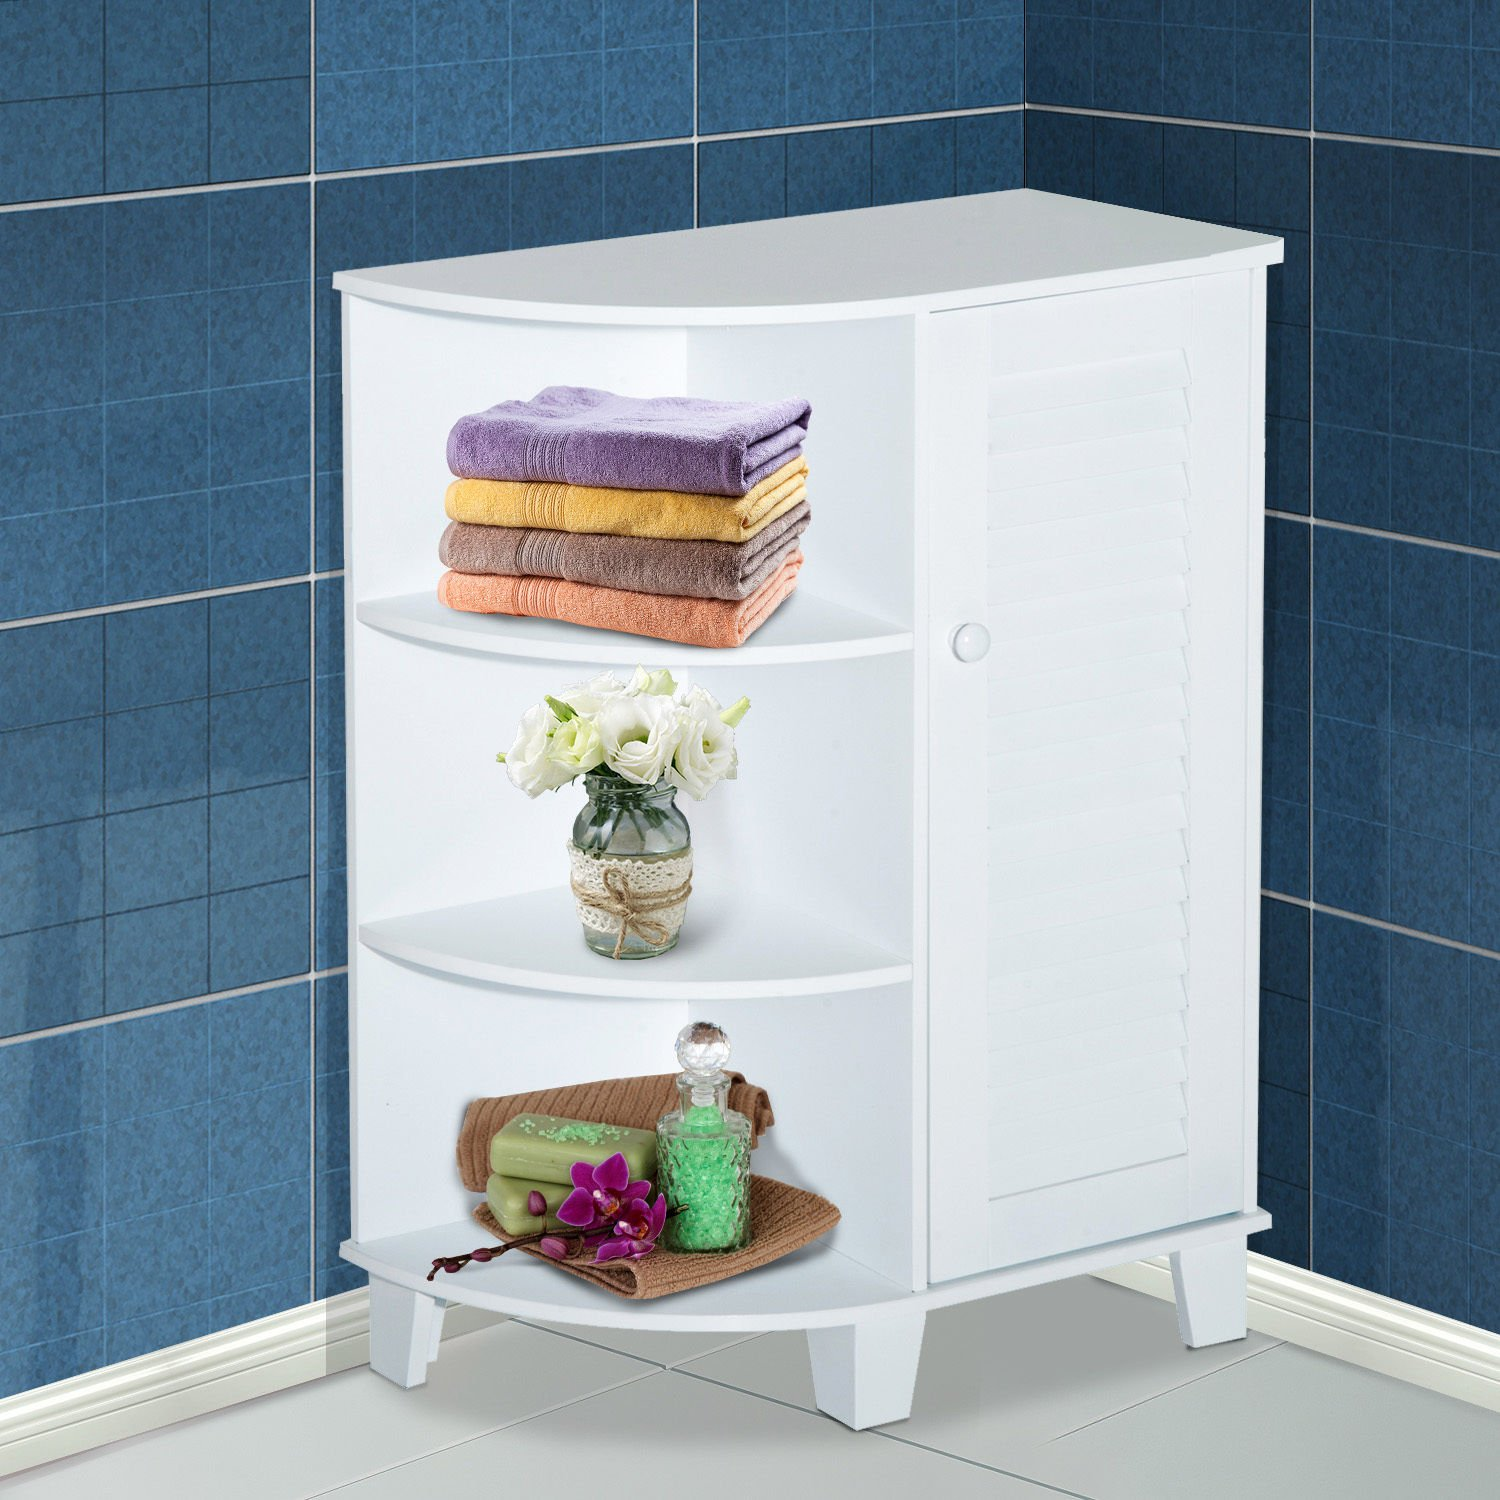 """HOMCOM 32"""" Modern Country Free Standing Bathroom Cabinet Cupboard with Rounded Shelves - White by HOMCOM (Image #2)"""